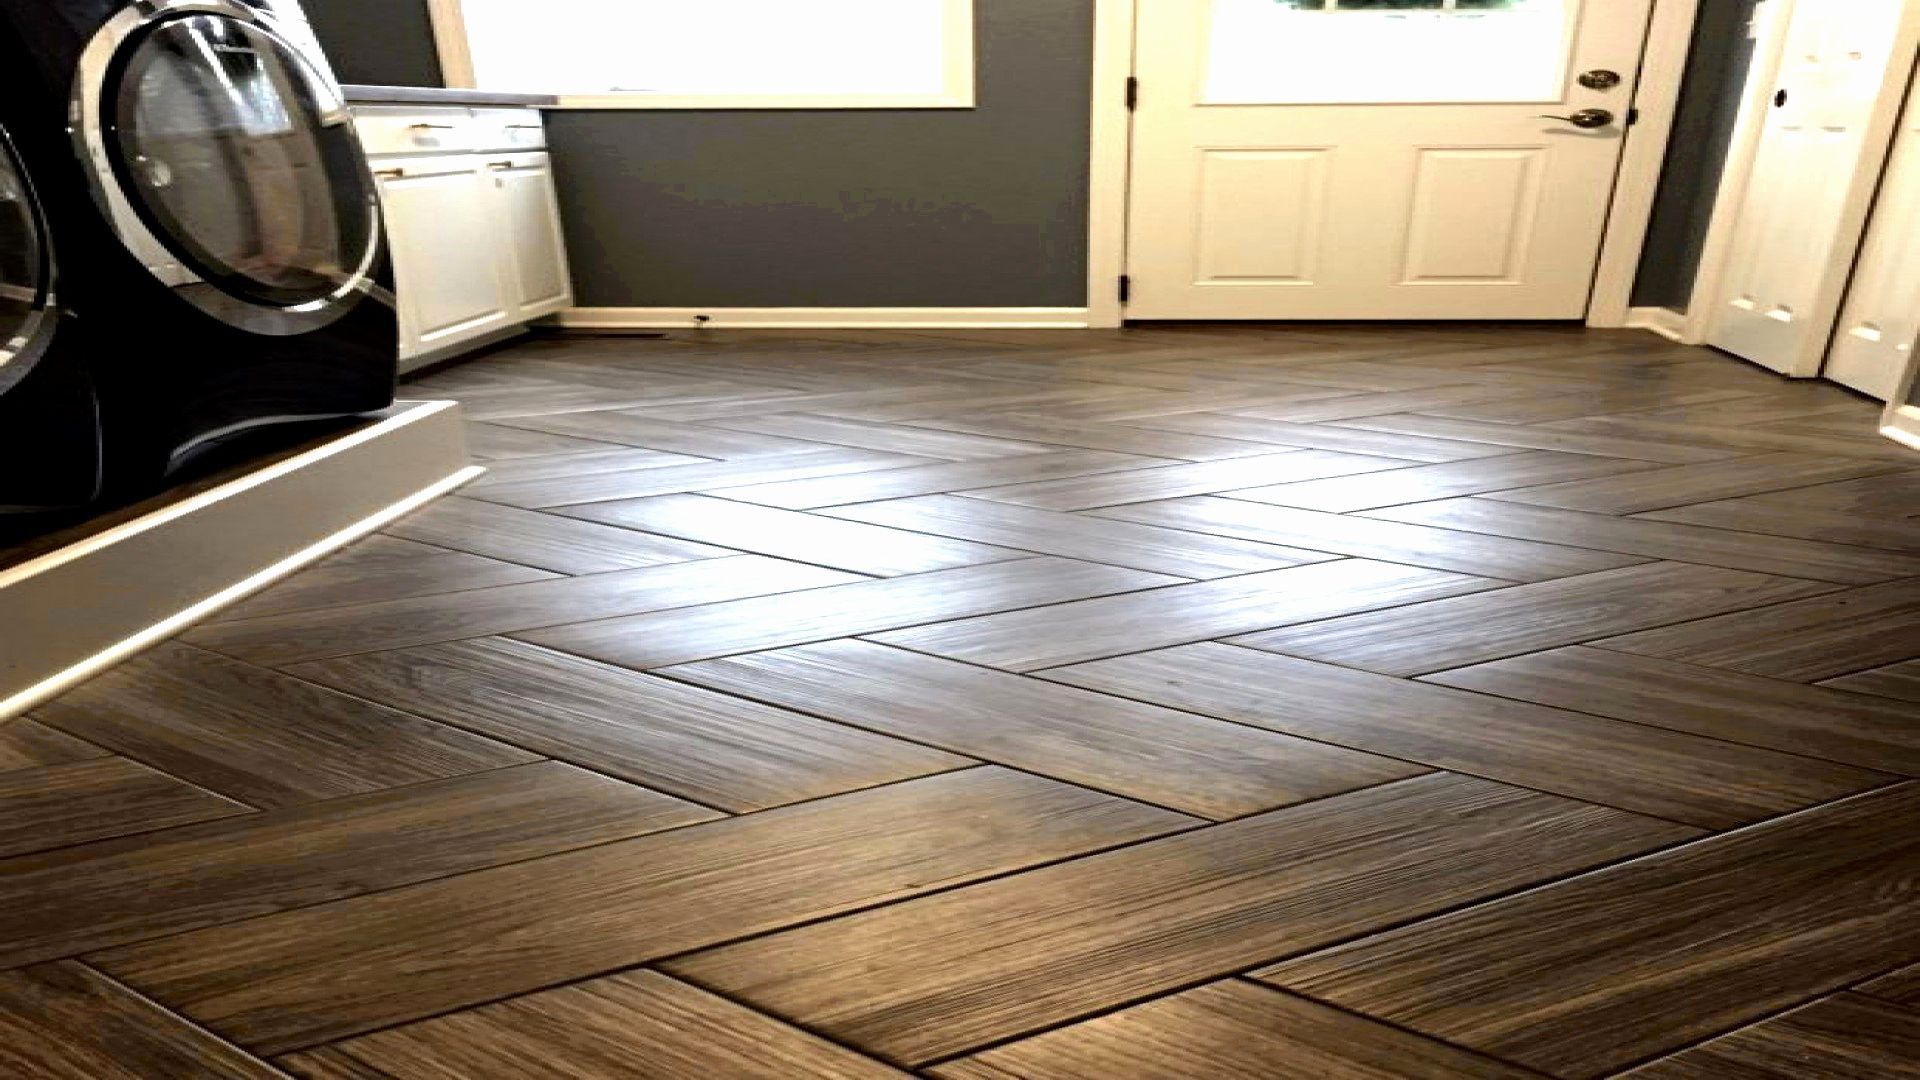 Hardwood Floor Refinishing San Francisco Of Dahuacctvth Com Page 51 Of 90 Flooring Decoration Ideas Page 51 within Laminate Flooring San Diego